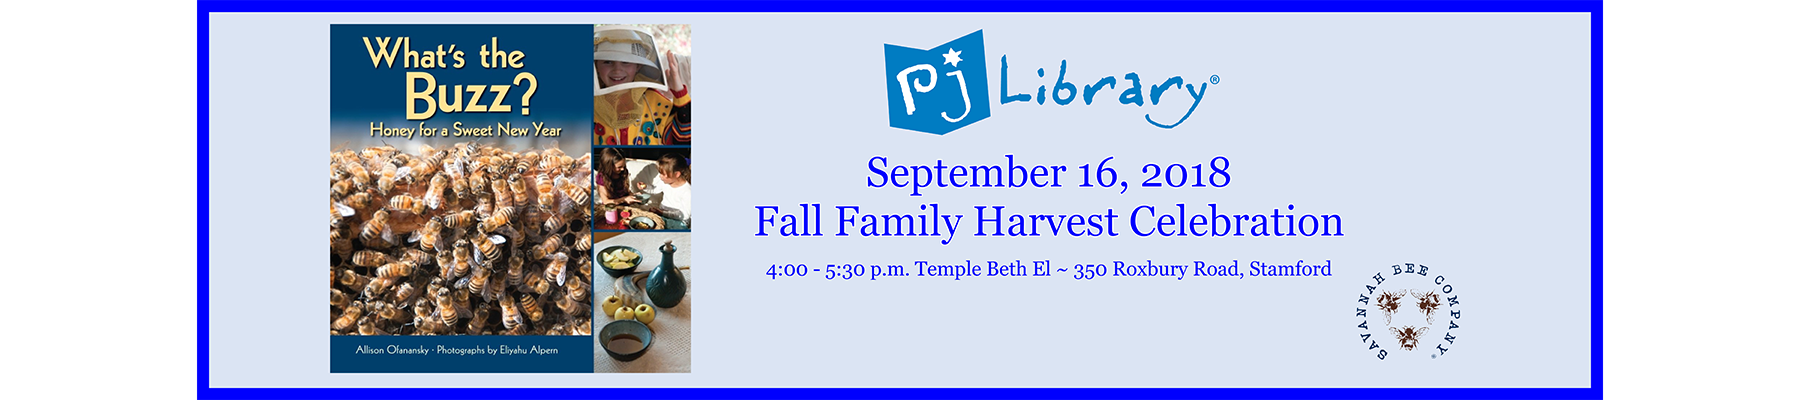 Fall-Family-Harvest-home-page-banner.png